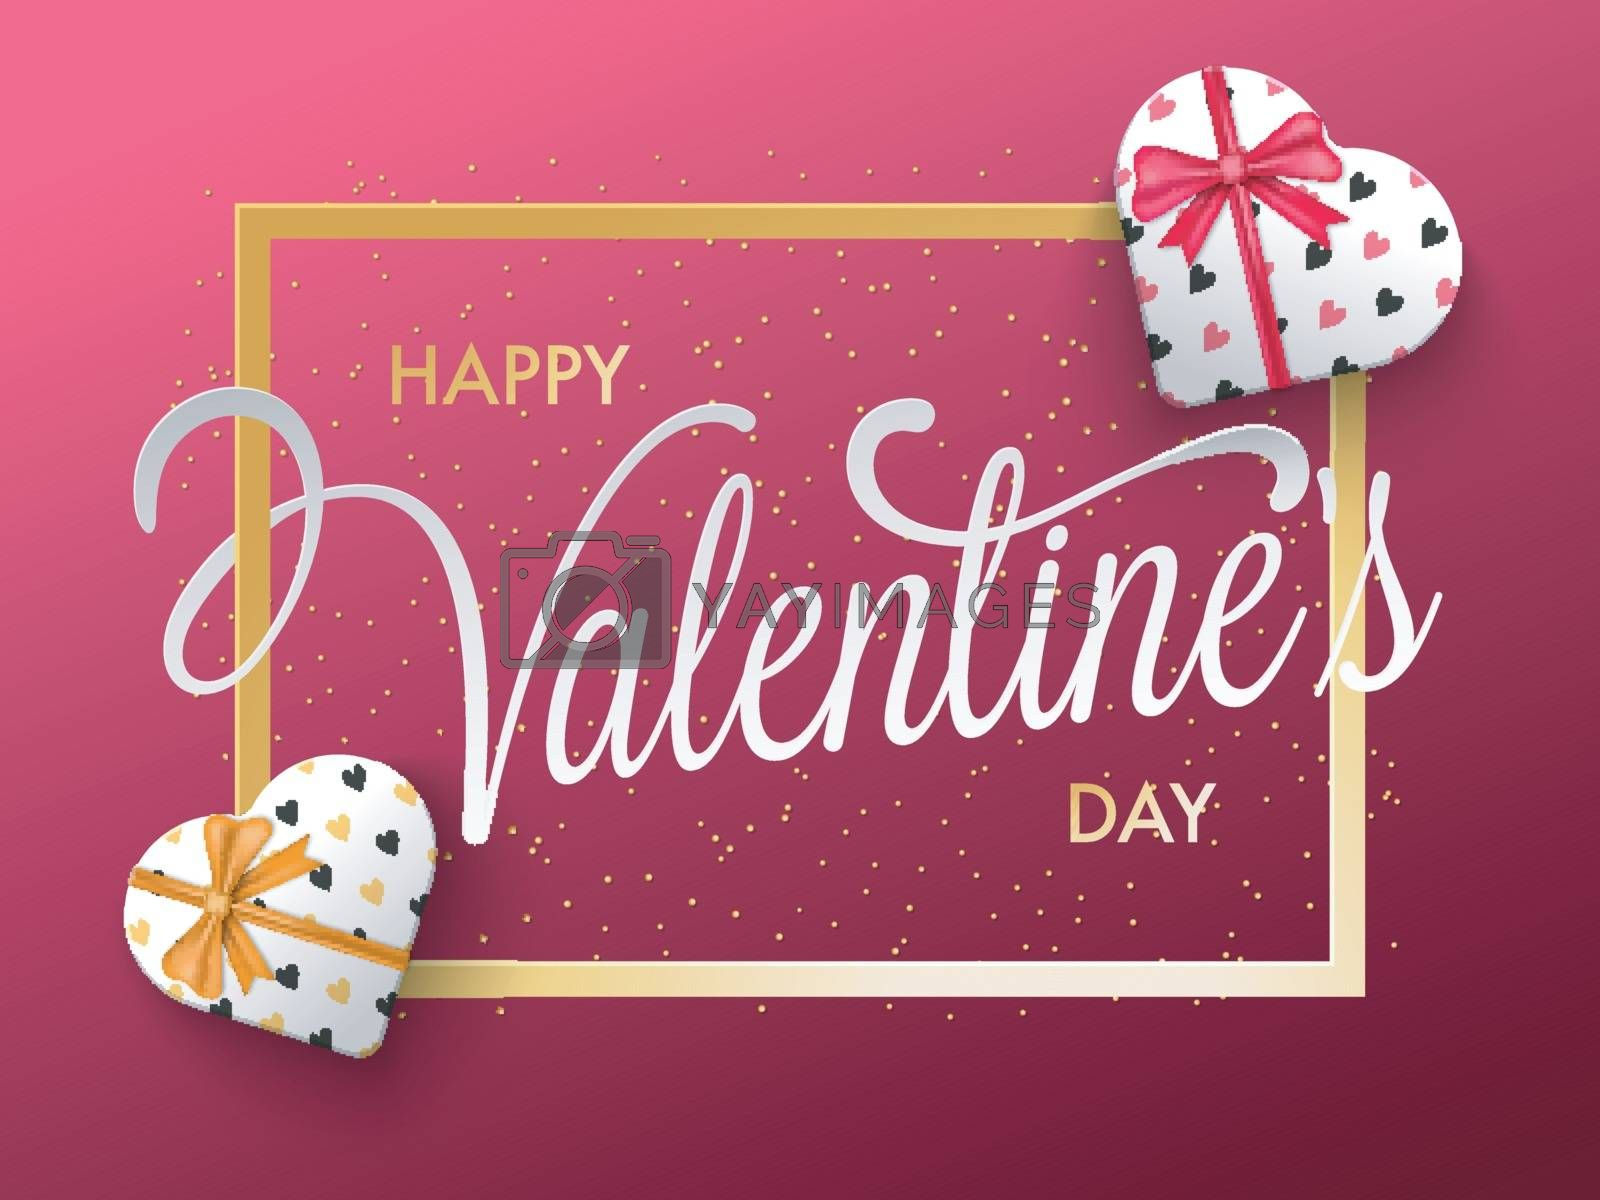 Happy Valentine's Day celebration greeting card design with creative hearts decoration.